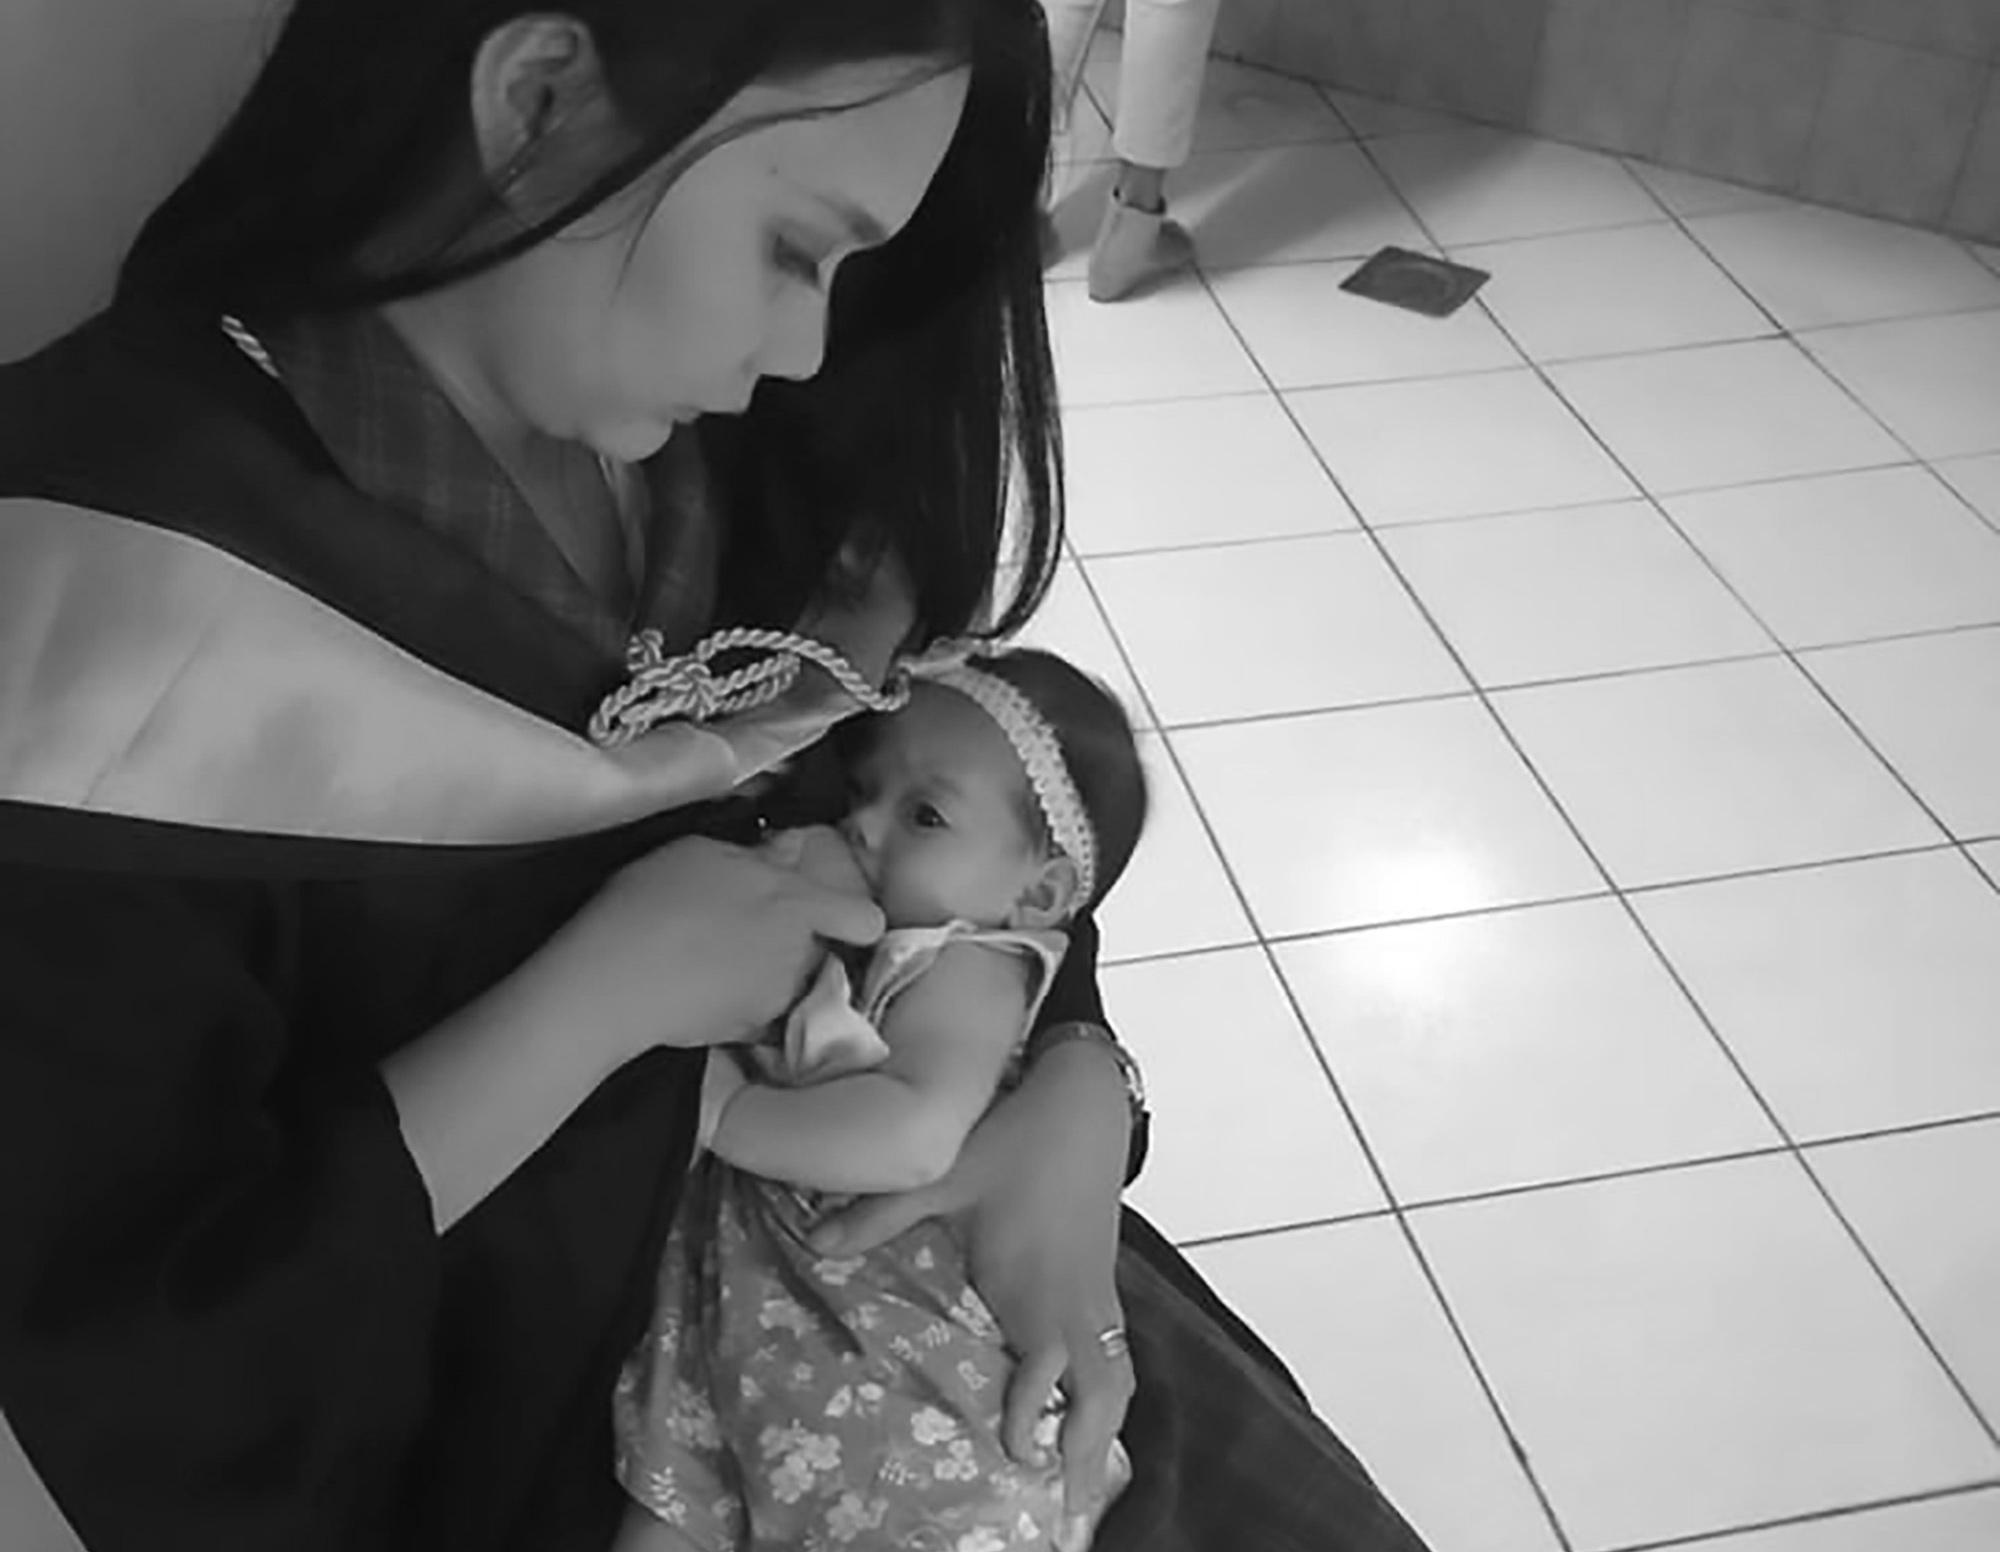 Student Beauty Praised For Breastfeeding At Graduation